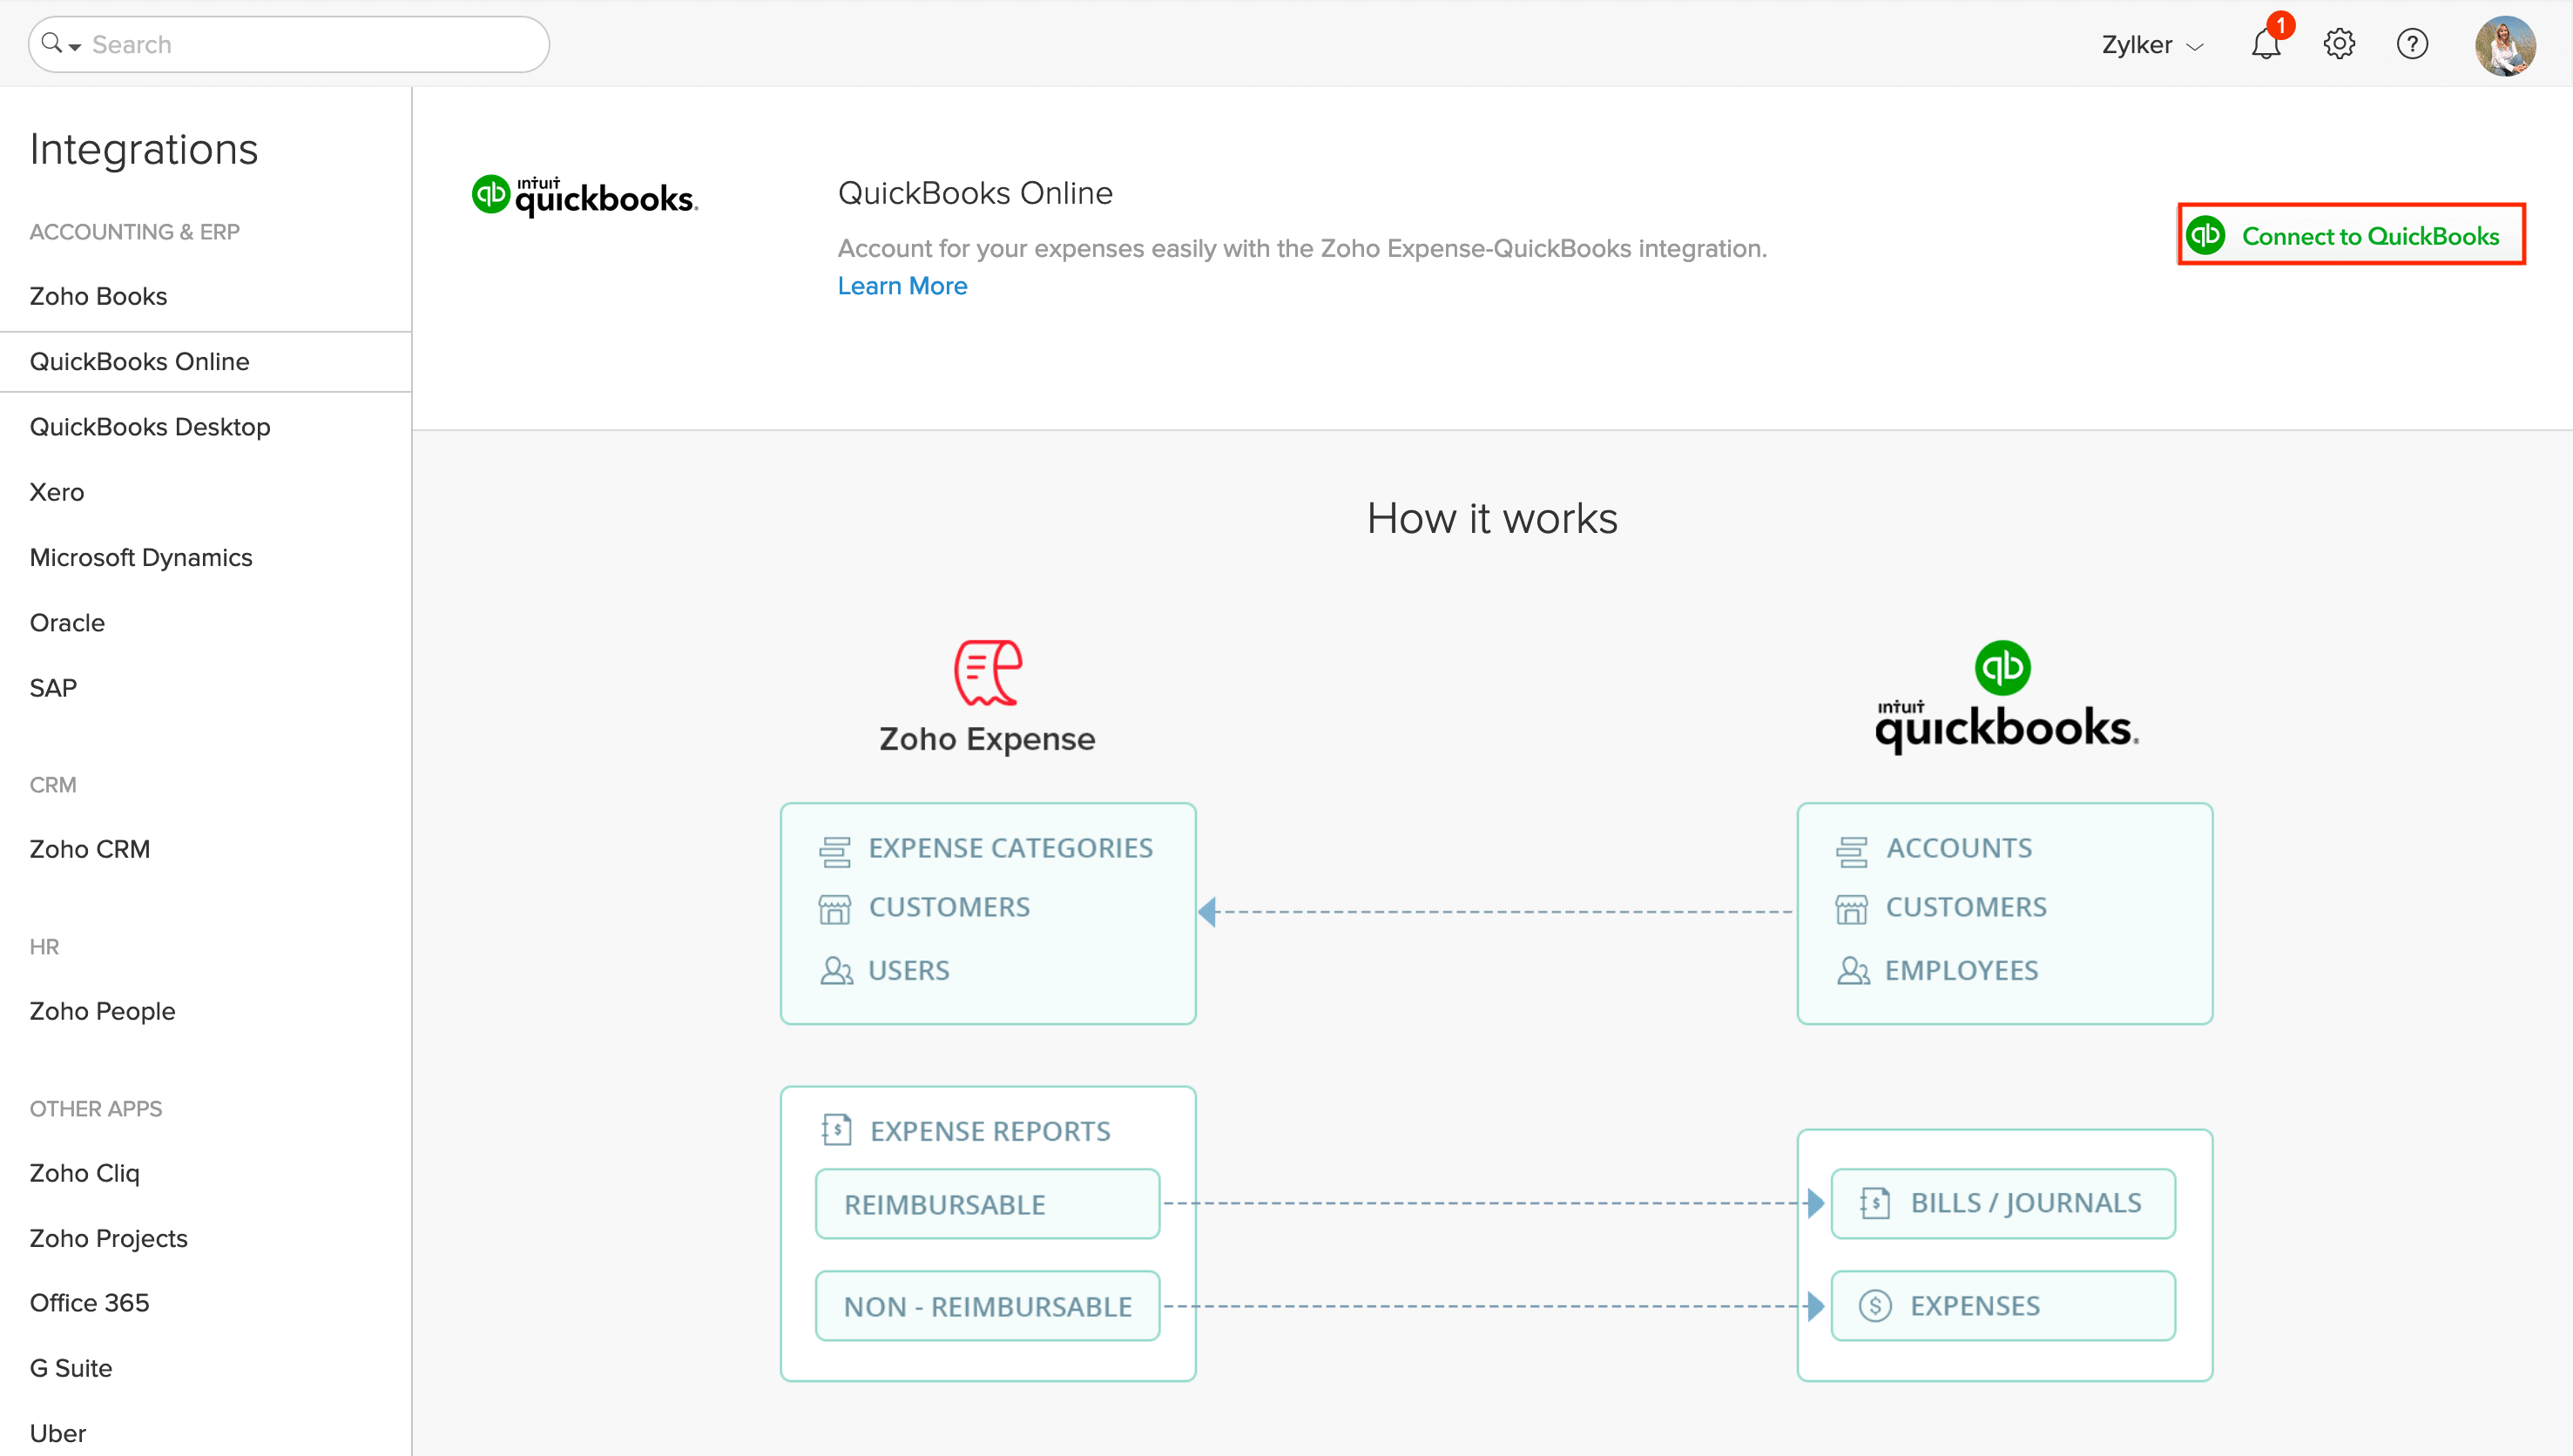 Initiate setup with QuickBooks